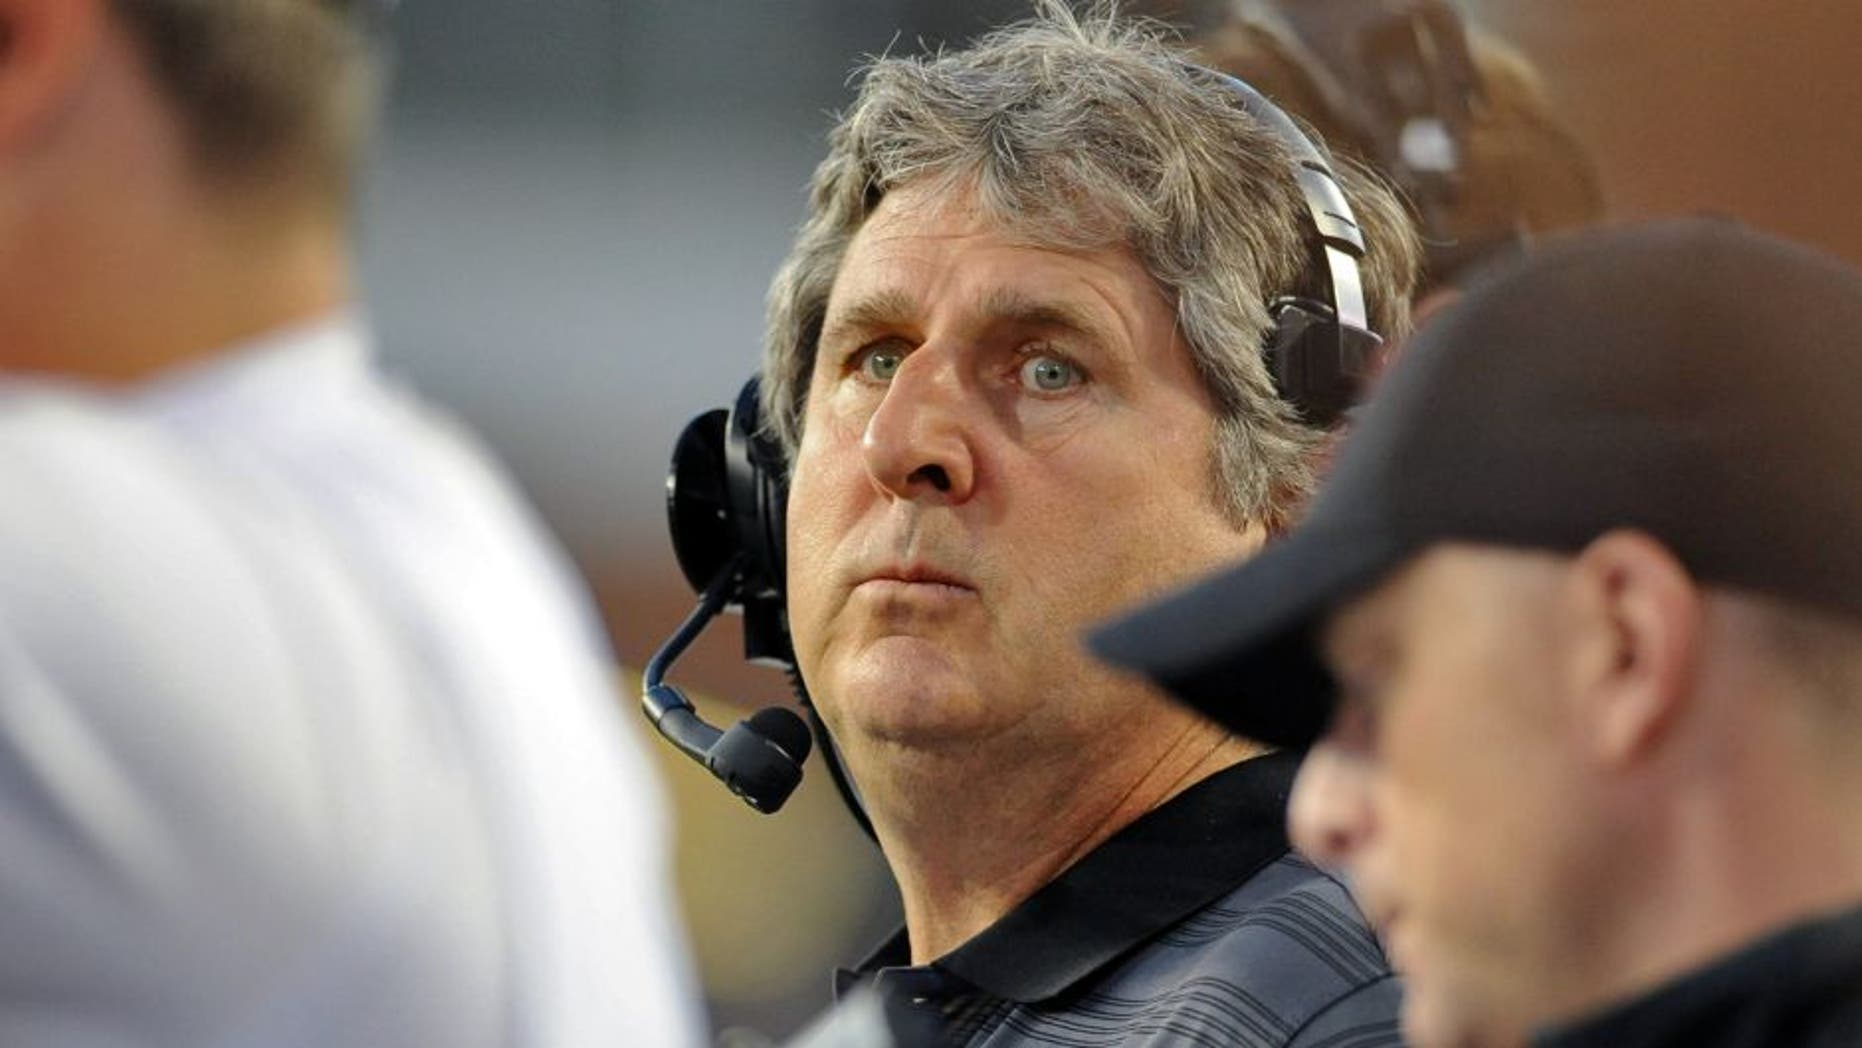 Sep 13, 2014; Pullman, WA, USA; Washington State Cougars head coach Mike Leach looks on against thePortland State Vikings during the second half at Martin Stadium. The Cougar beat Vikings 59-21. Mandatory Credit: James Snook-USA TODAY Sports